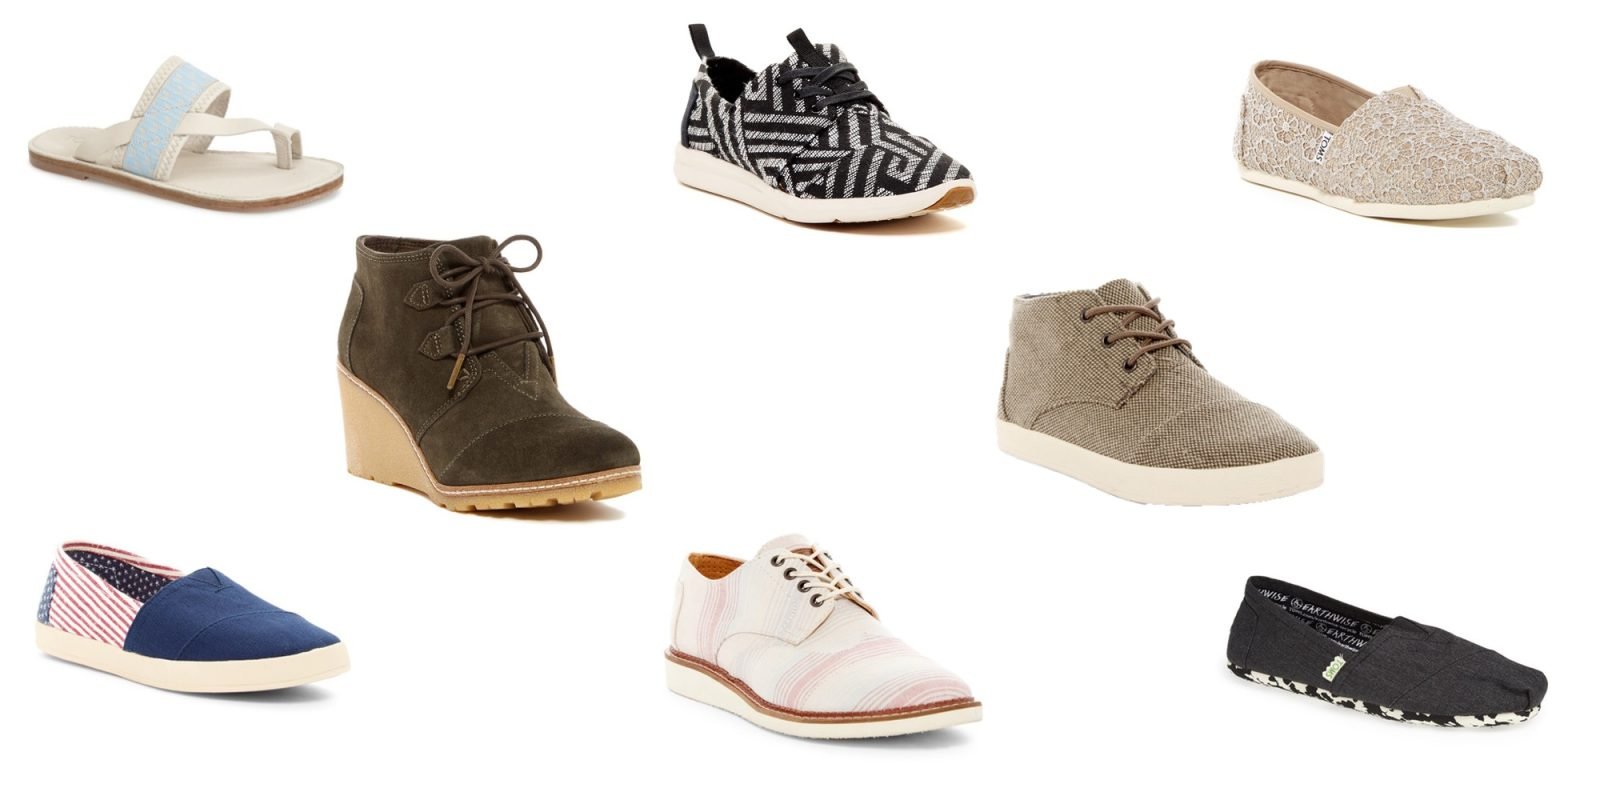 189e800e503 Get up to 70% off men and women s TOMS at Nordstrom Rack s limited online  sale event